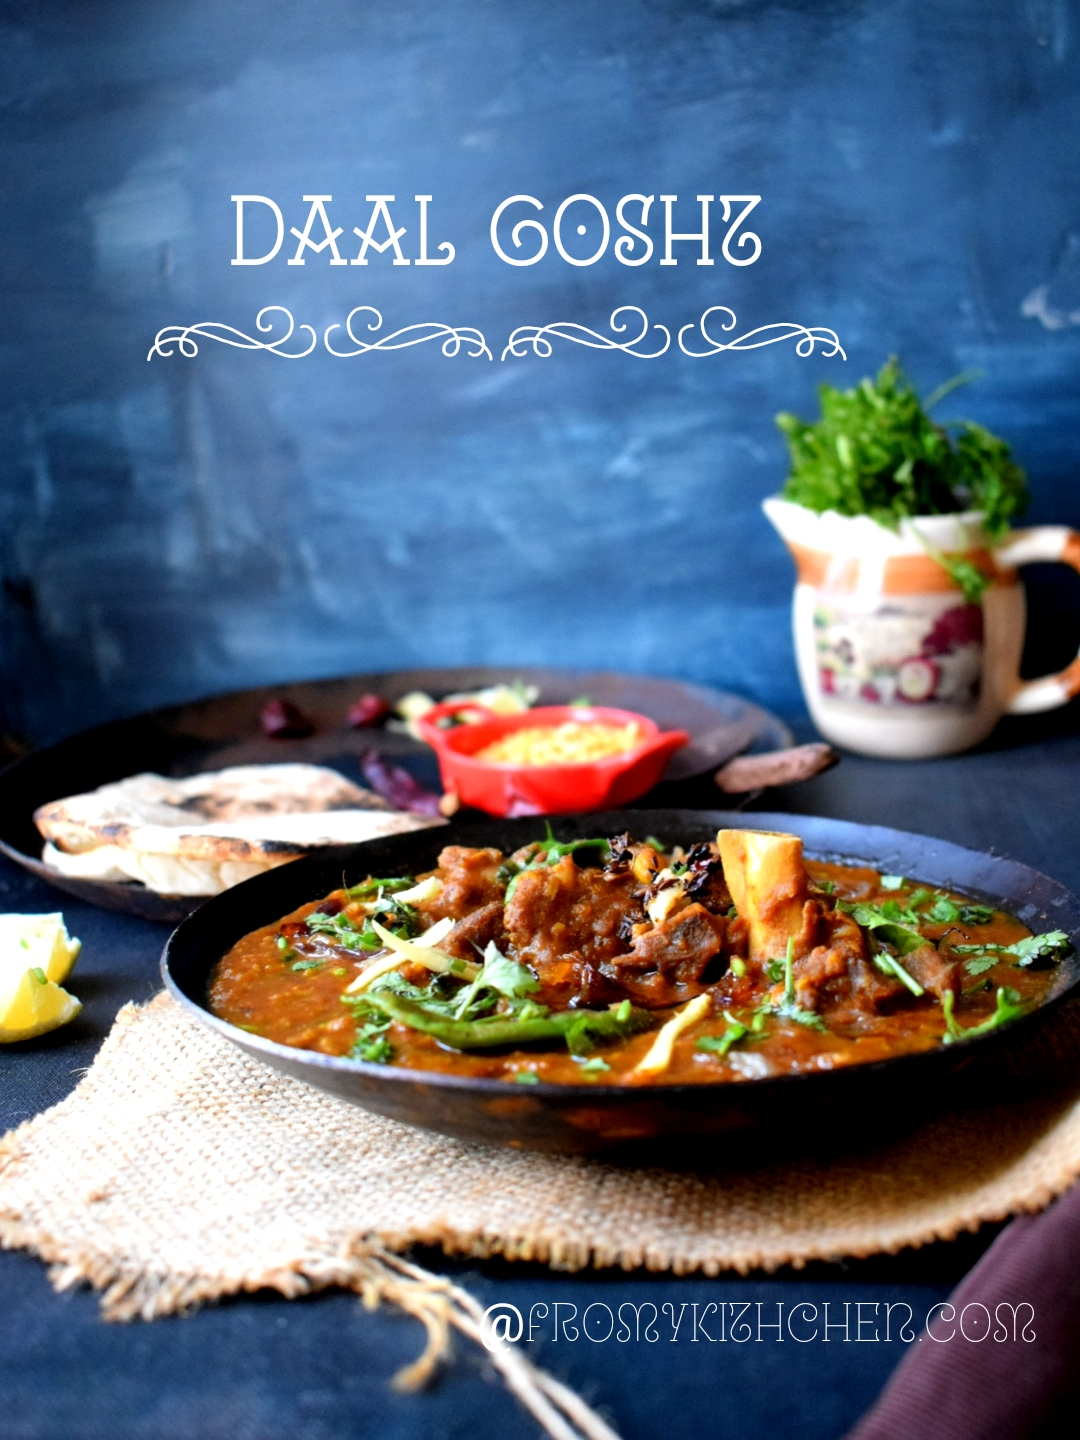 Daal Ghost